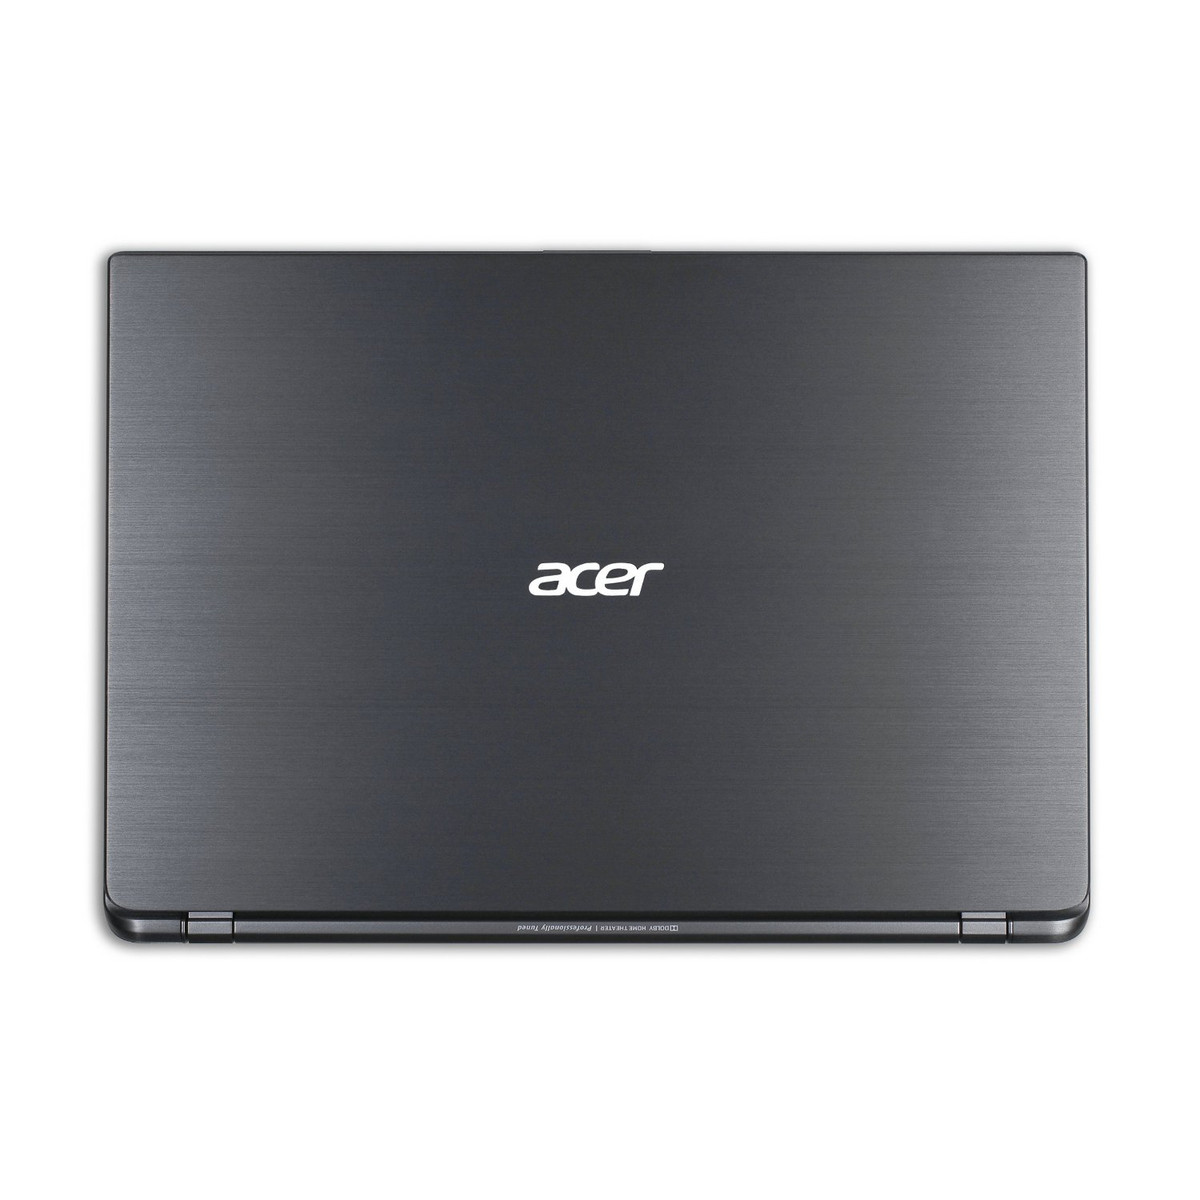 DRIVER UPDATE: ACER ASPIRE M5-481TG NVIDIA GRAPHICS